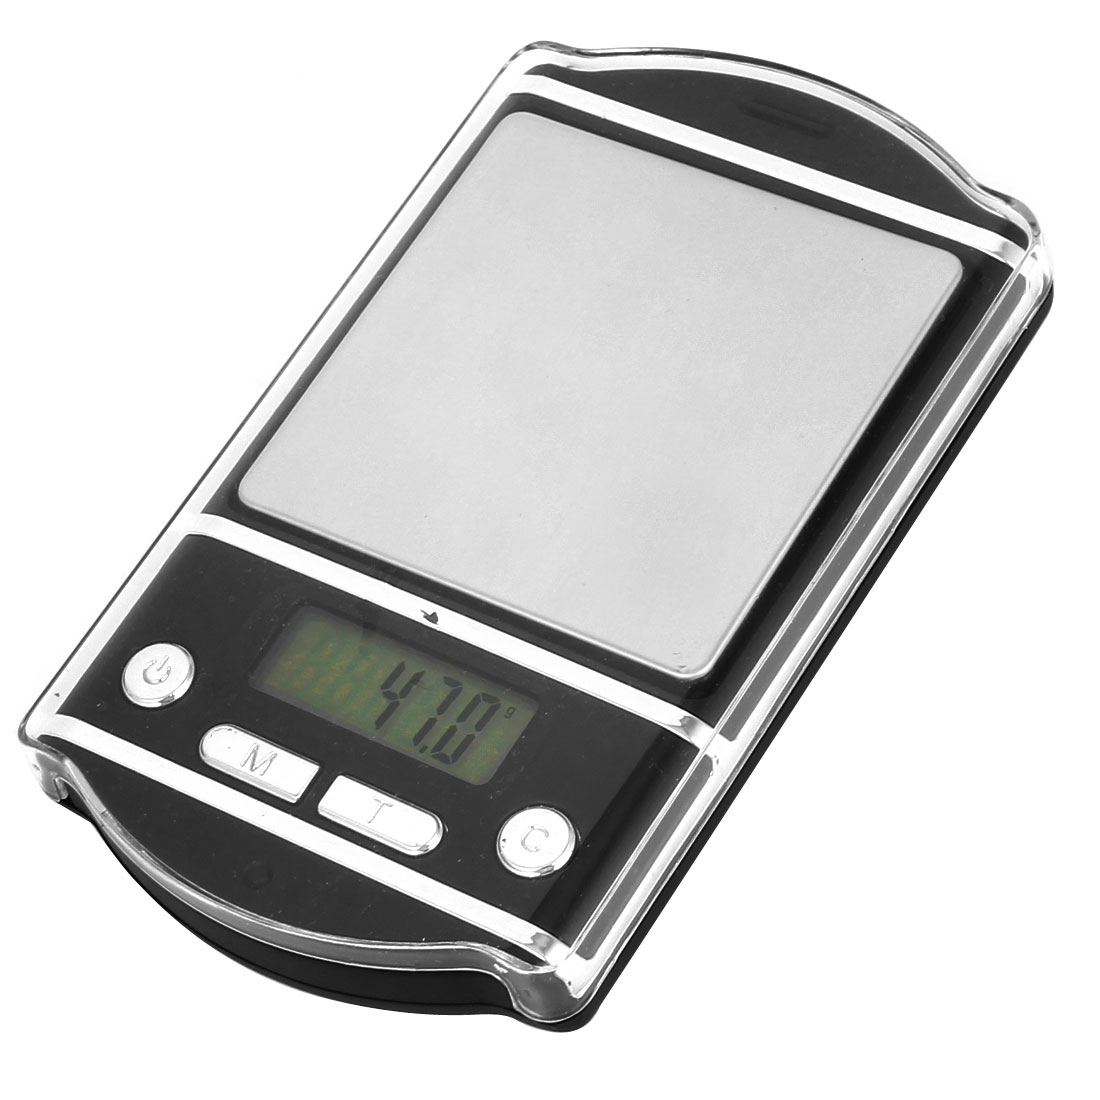 Clear Plastic Cover 0.1g 500g Jewelry Weight Balance Mini Digital Pocket Scale